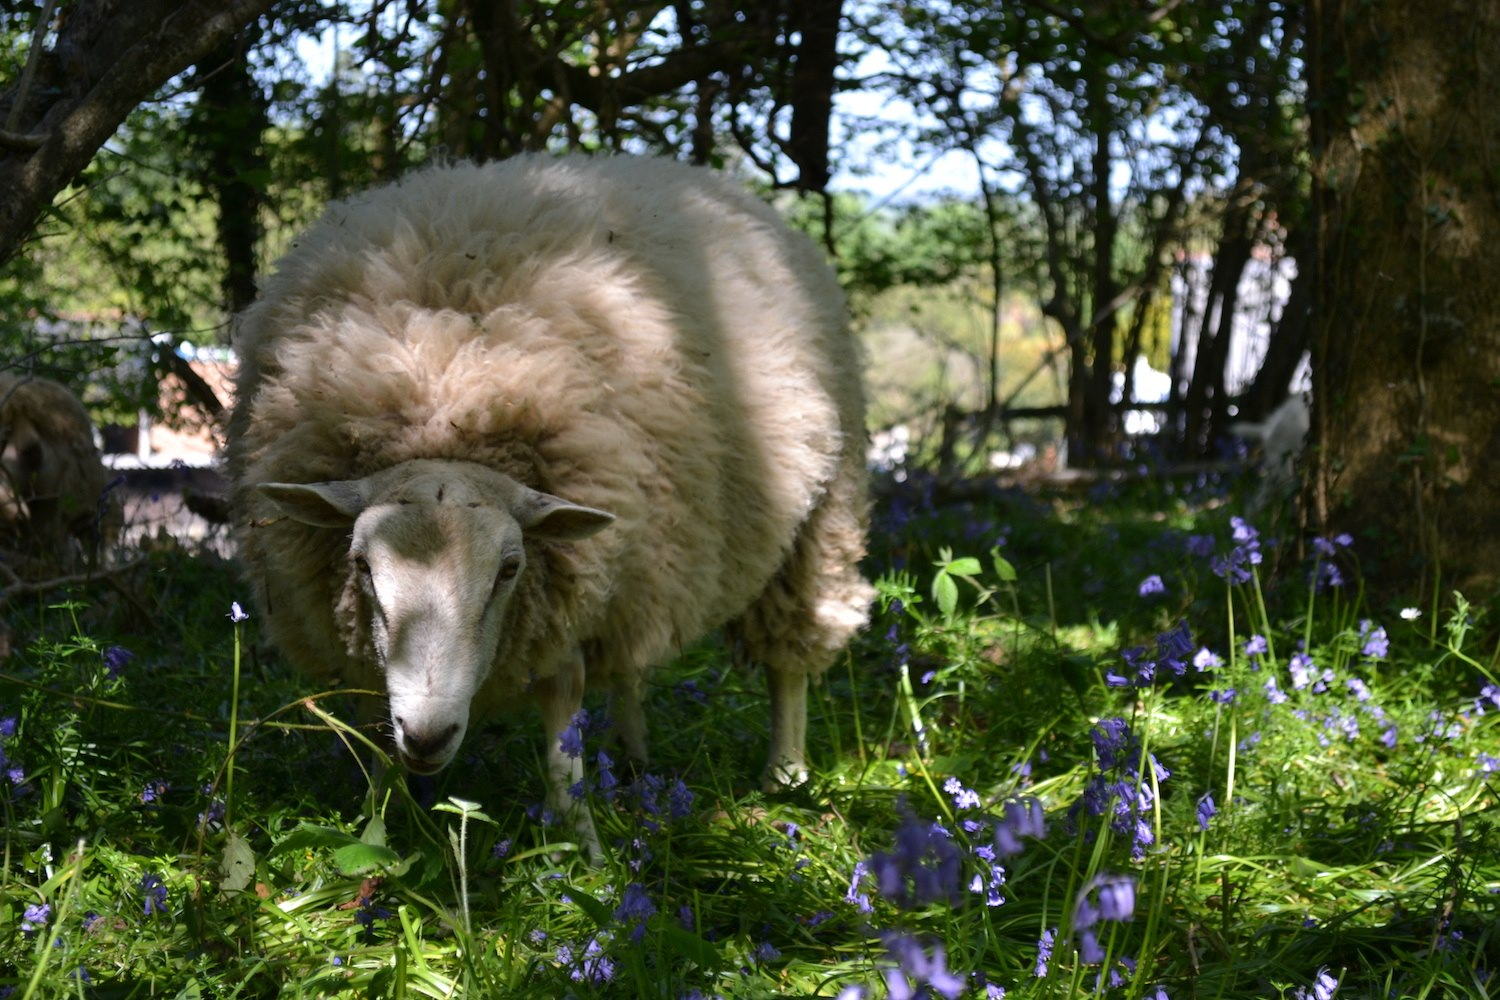 Sheep grazing in the bluebells at Borthwood Copse